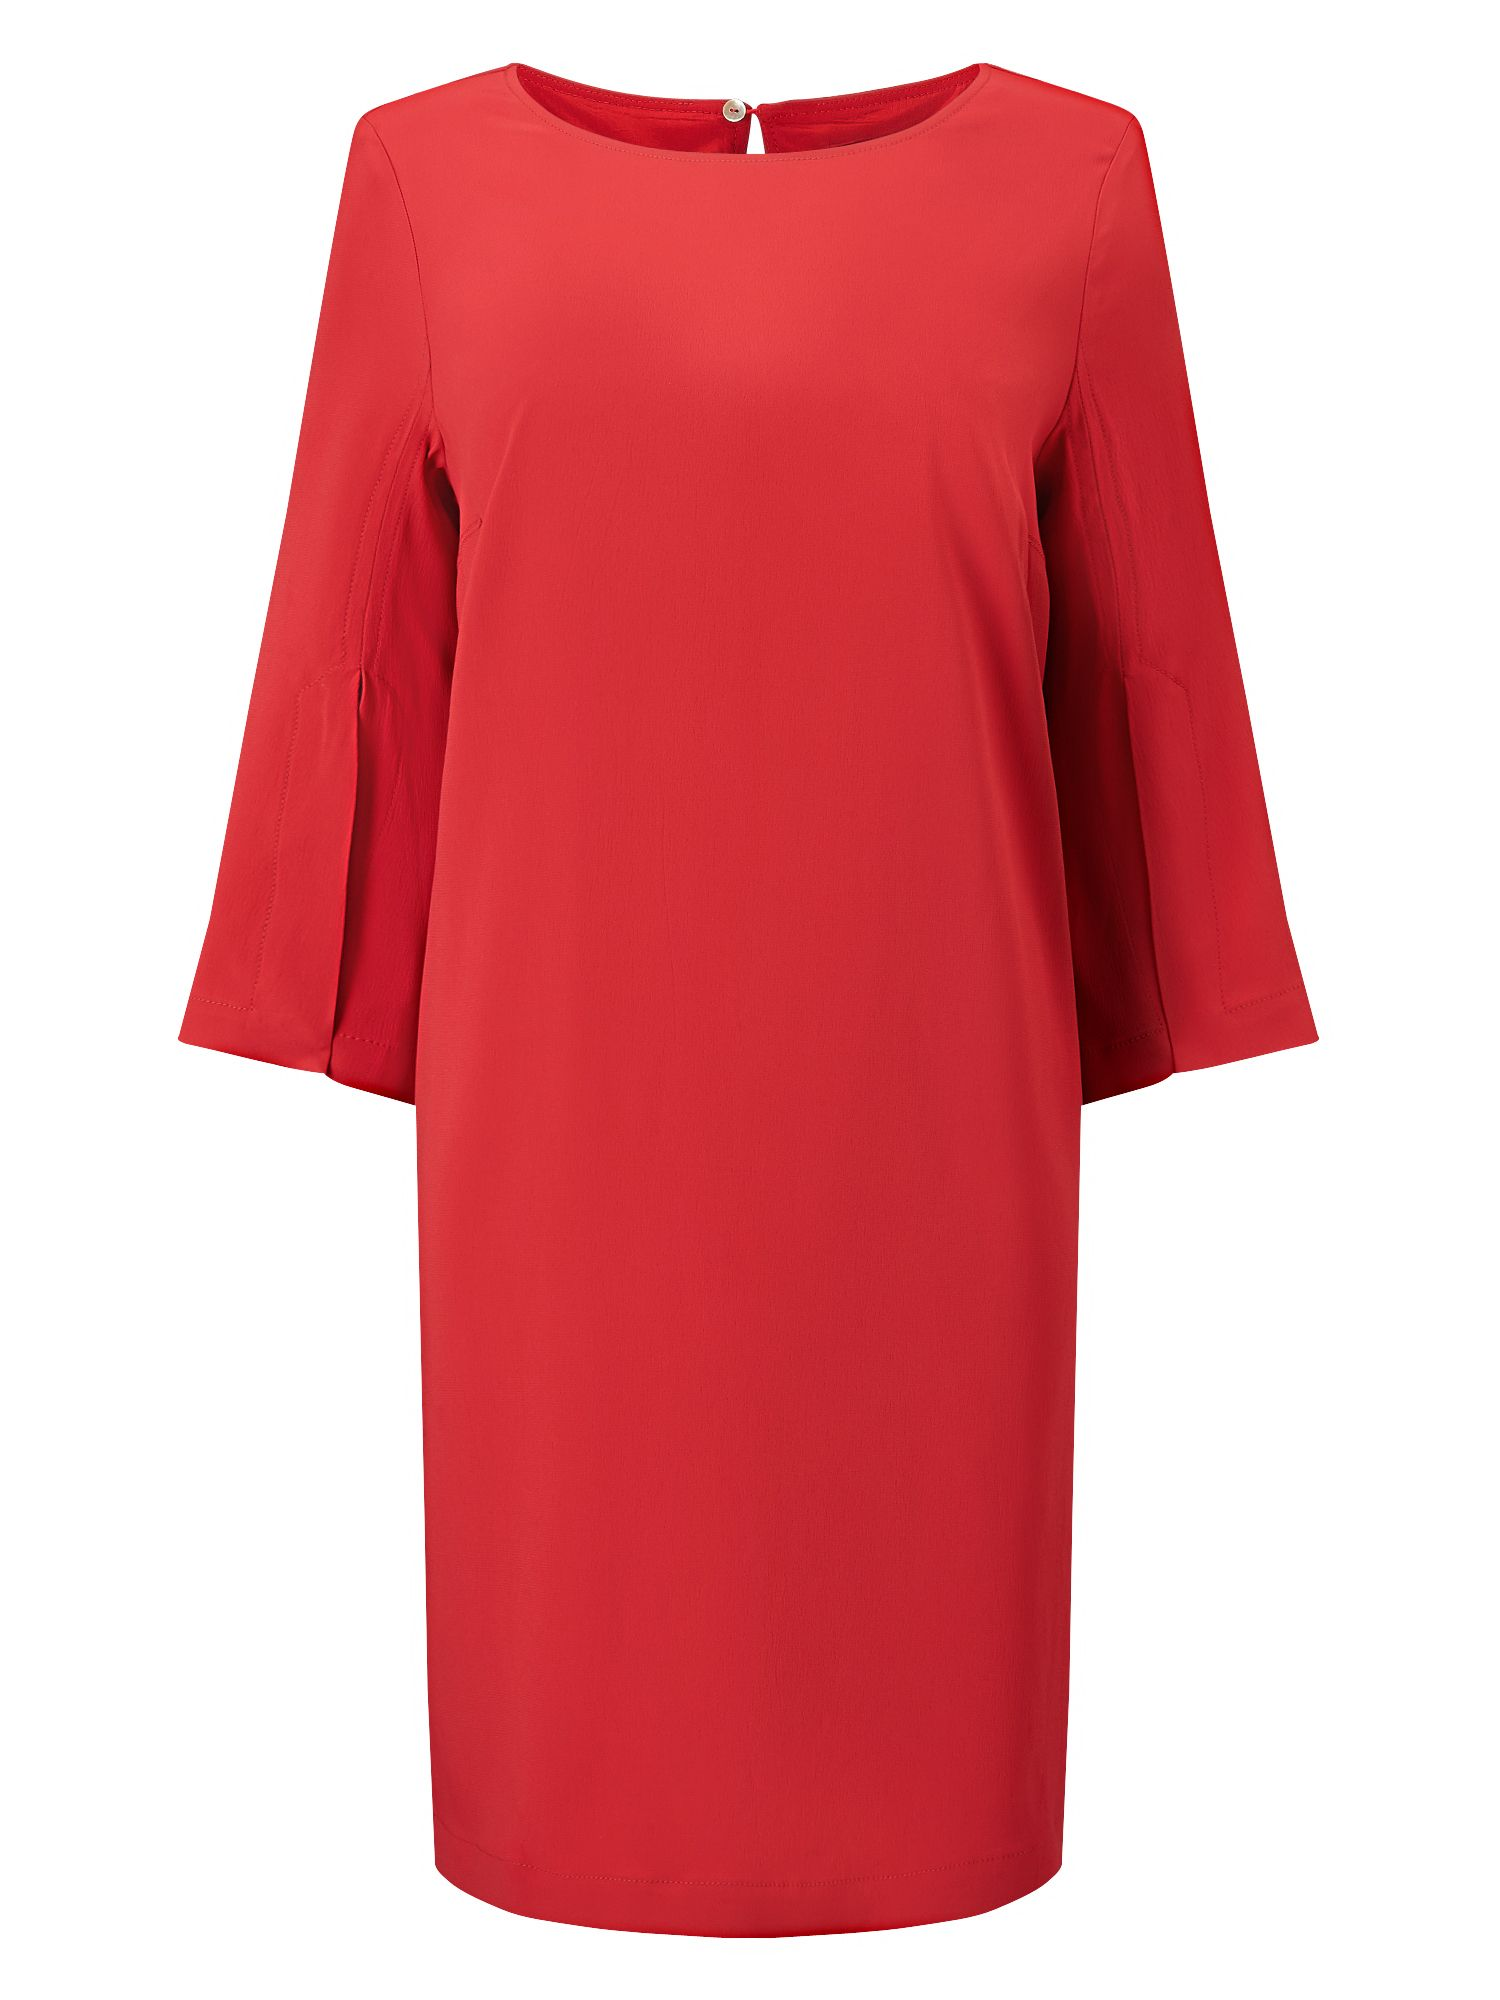 Jacques Vert Tie Side Sophisticated Dress, Red